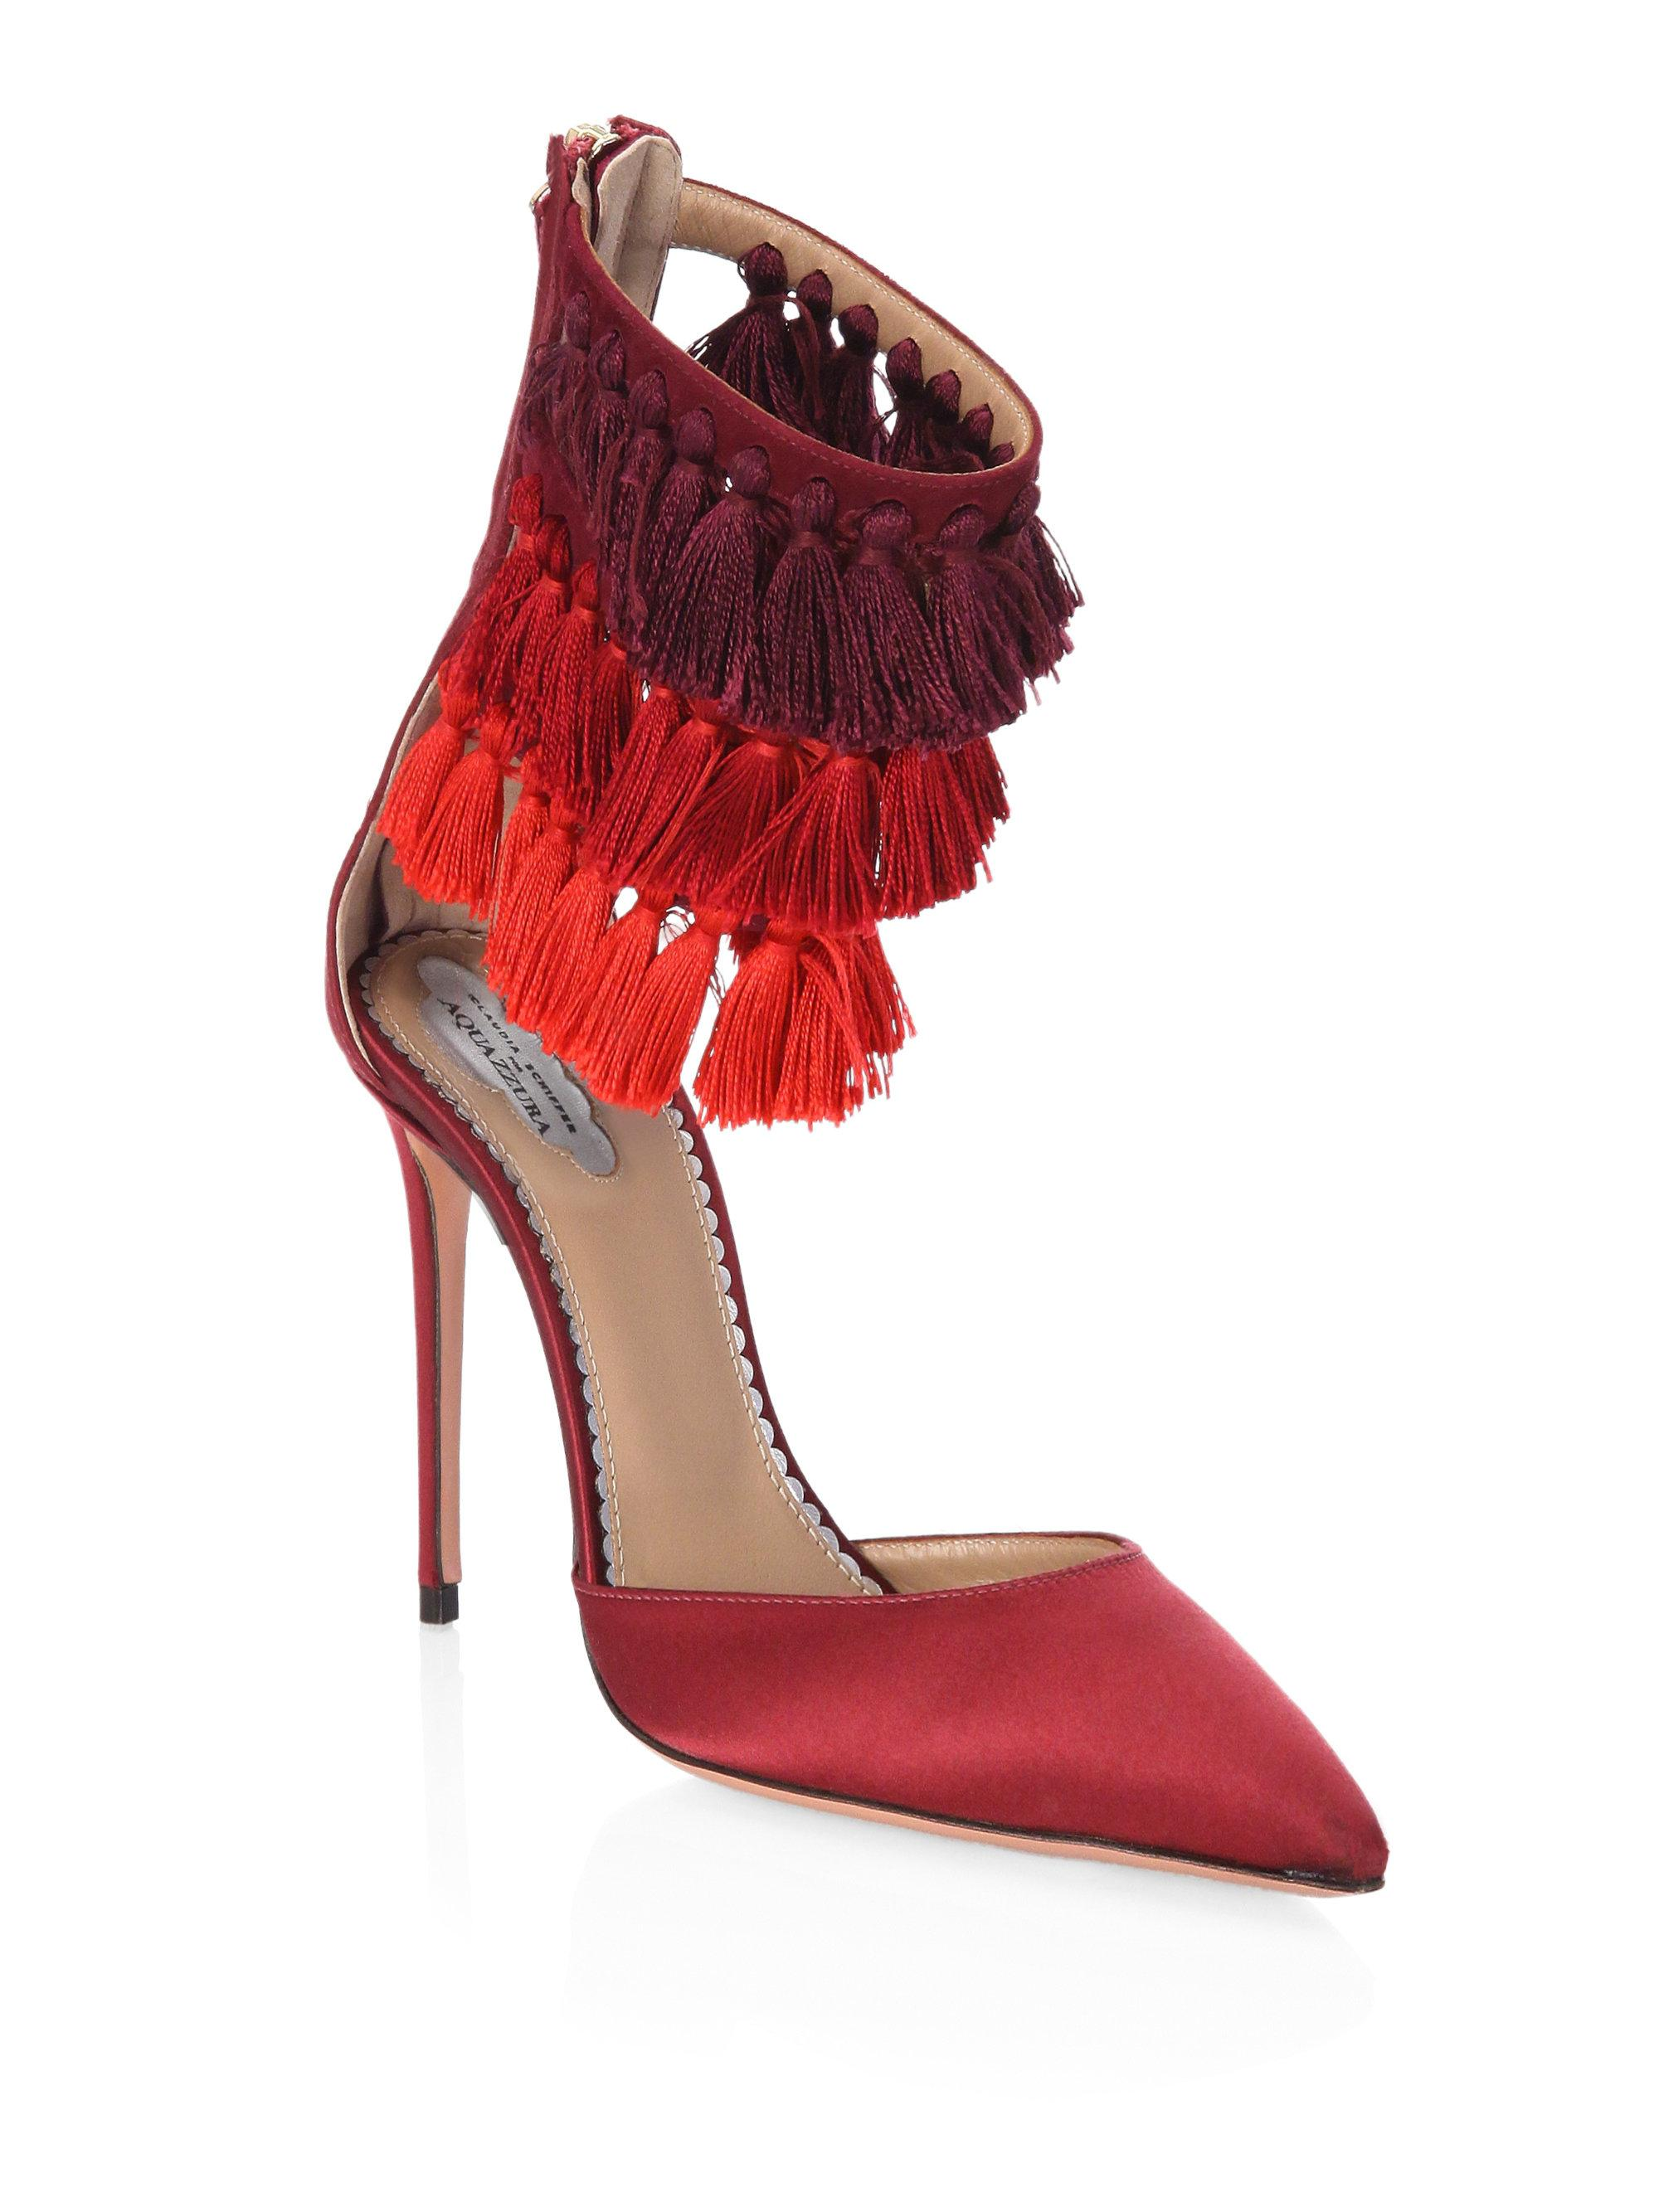 Aquazzura Claudia Schiffer for Lou Lou Tasseled Pumps 8MHNz